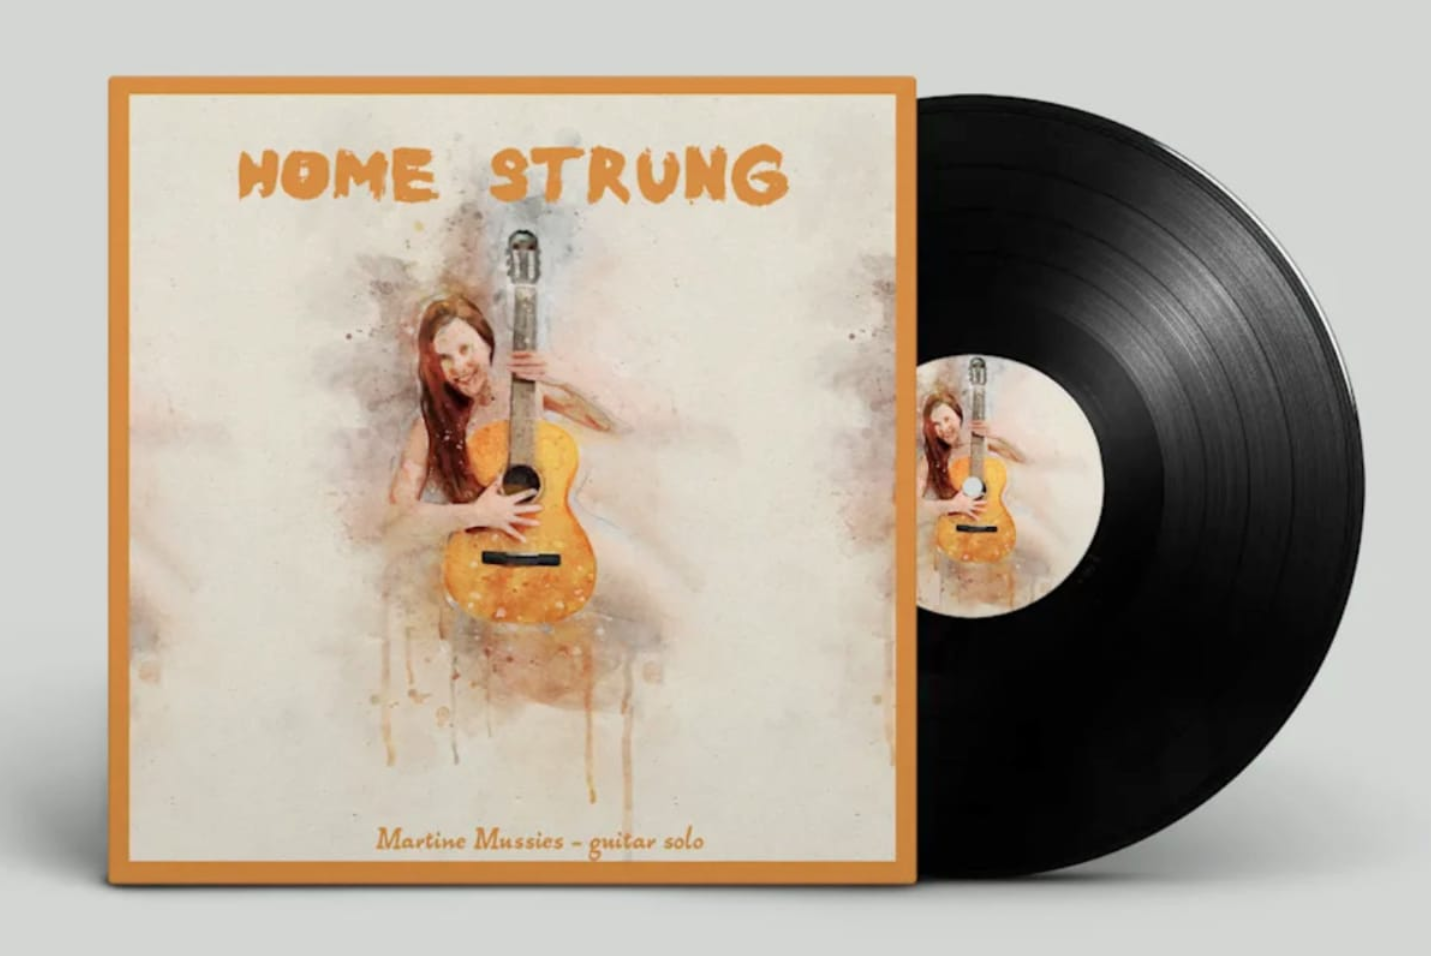 Home Strung – the naked guitar